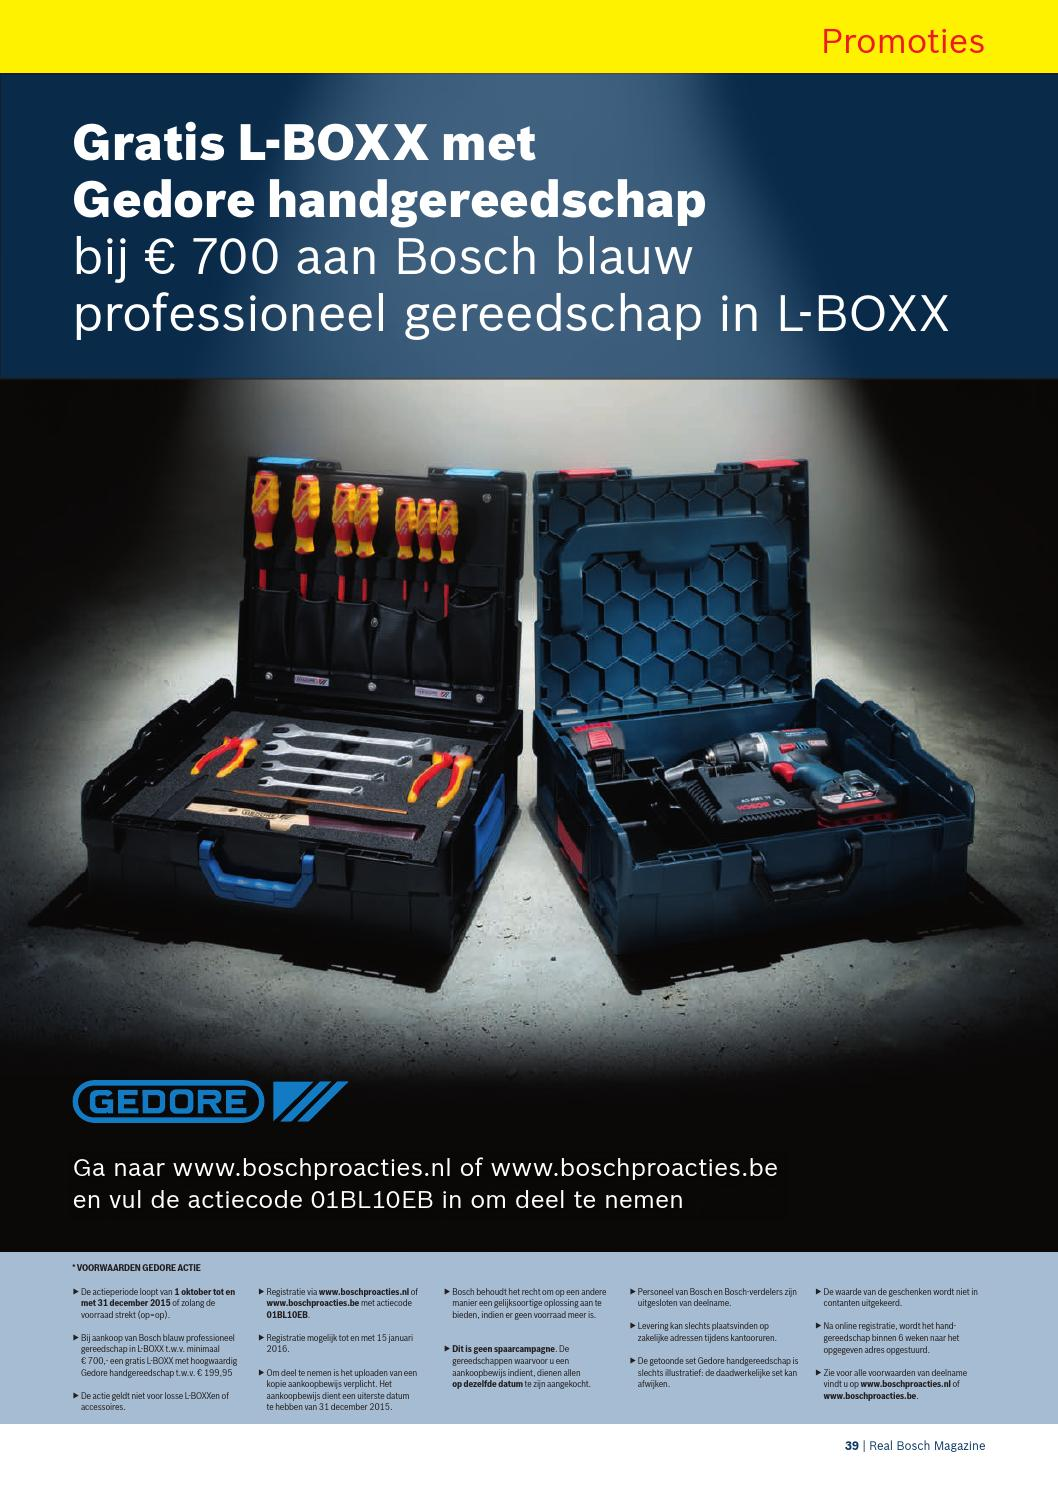 Bosch Blauw Actie Bosch Promo September December 2015 By Peter Goossens Issuu